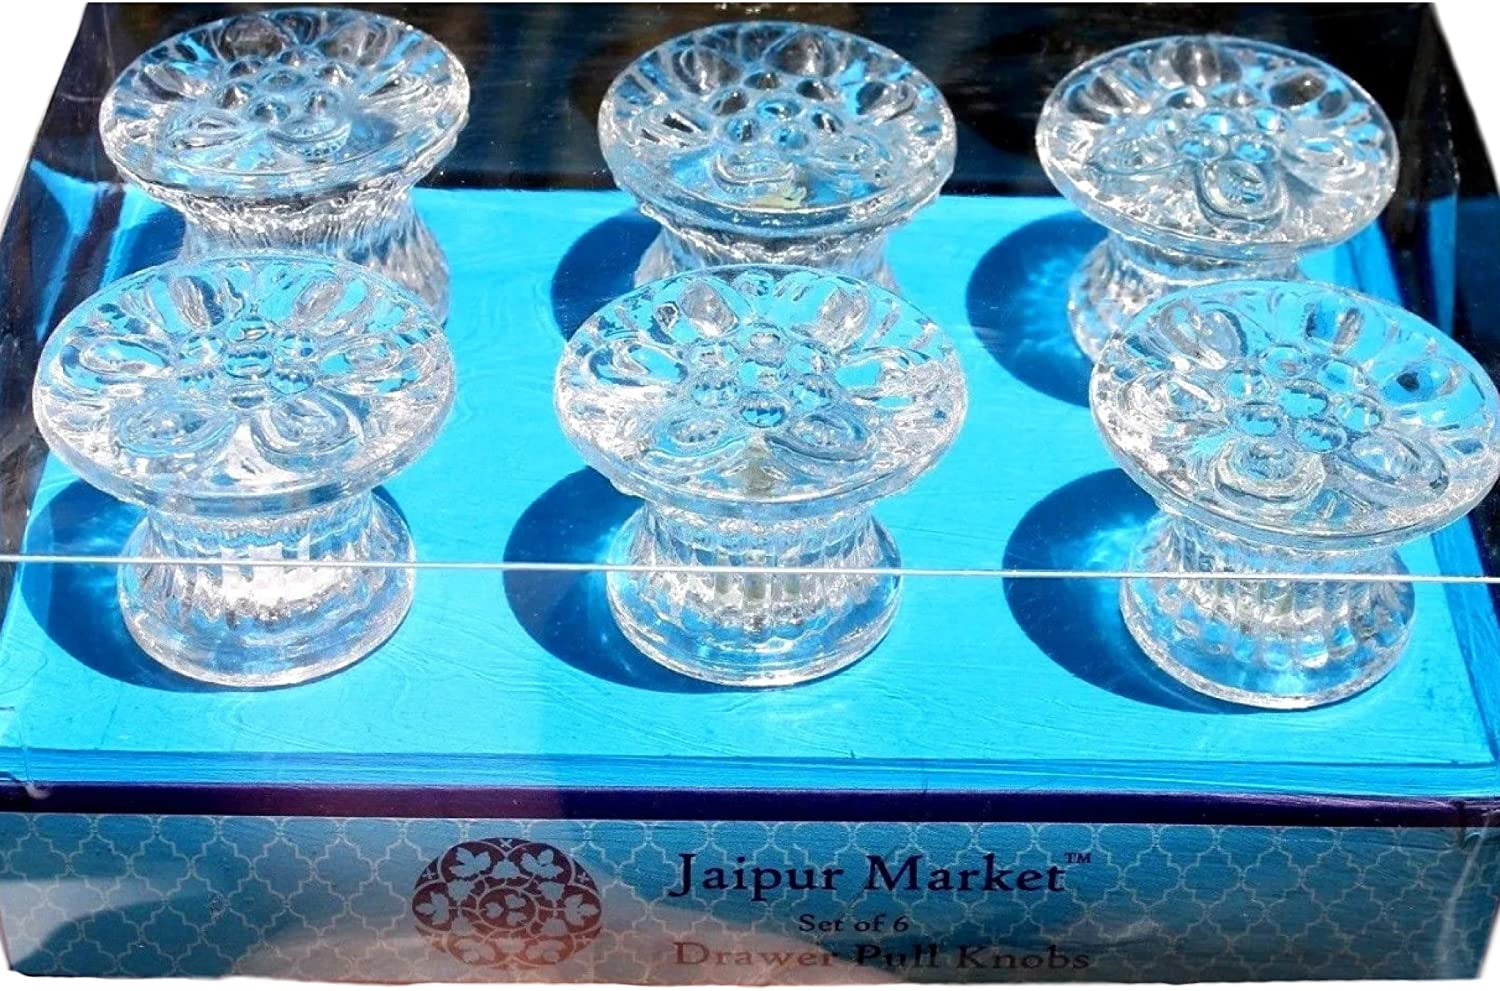 Tampa Mall Jaipur Market Set of 6 Popular product Drawer Look Pull Knobs Crystal